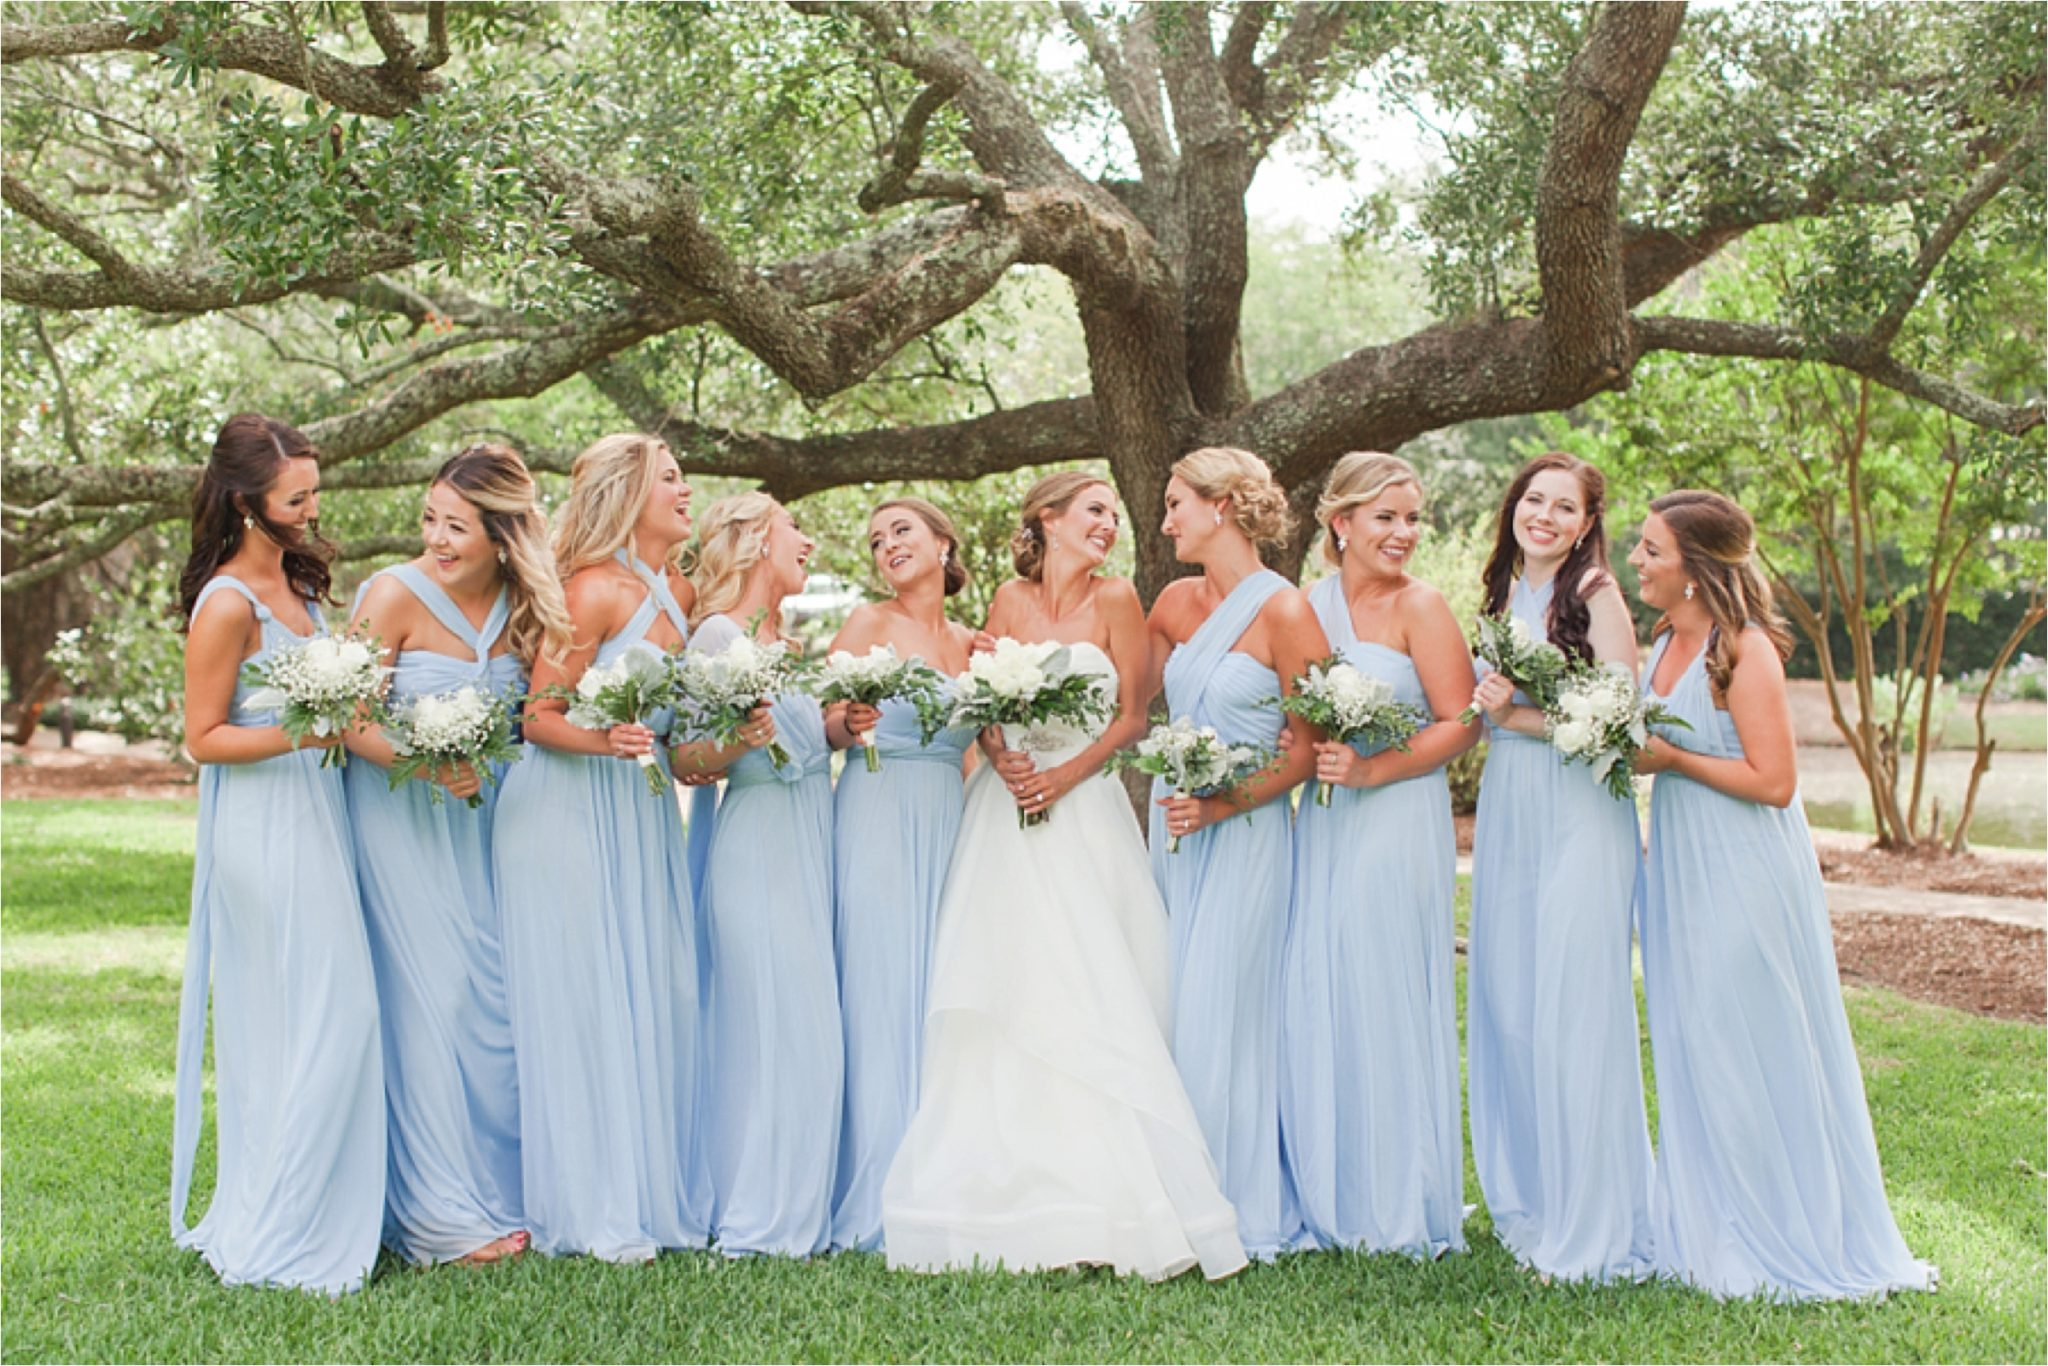 Classy-Light-Blue-wedding-at-the-Fairhope-Inn-MaryFrances-Craig_0112